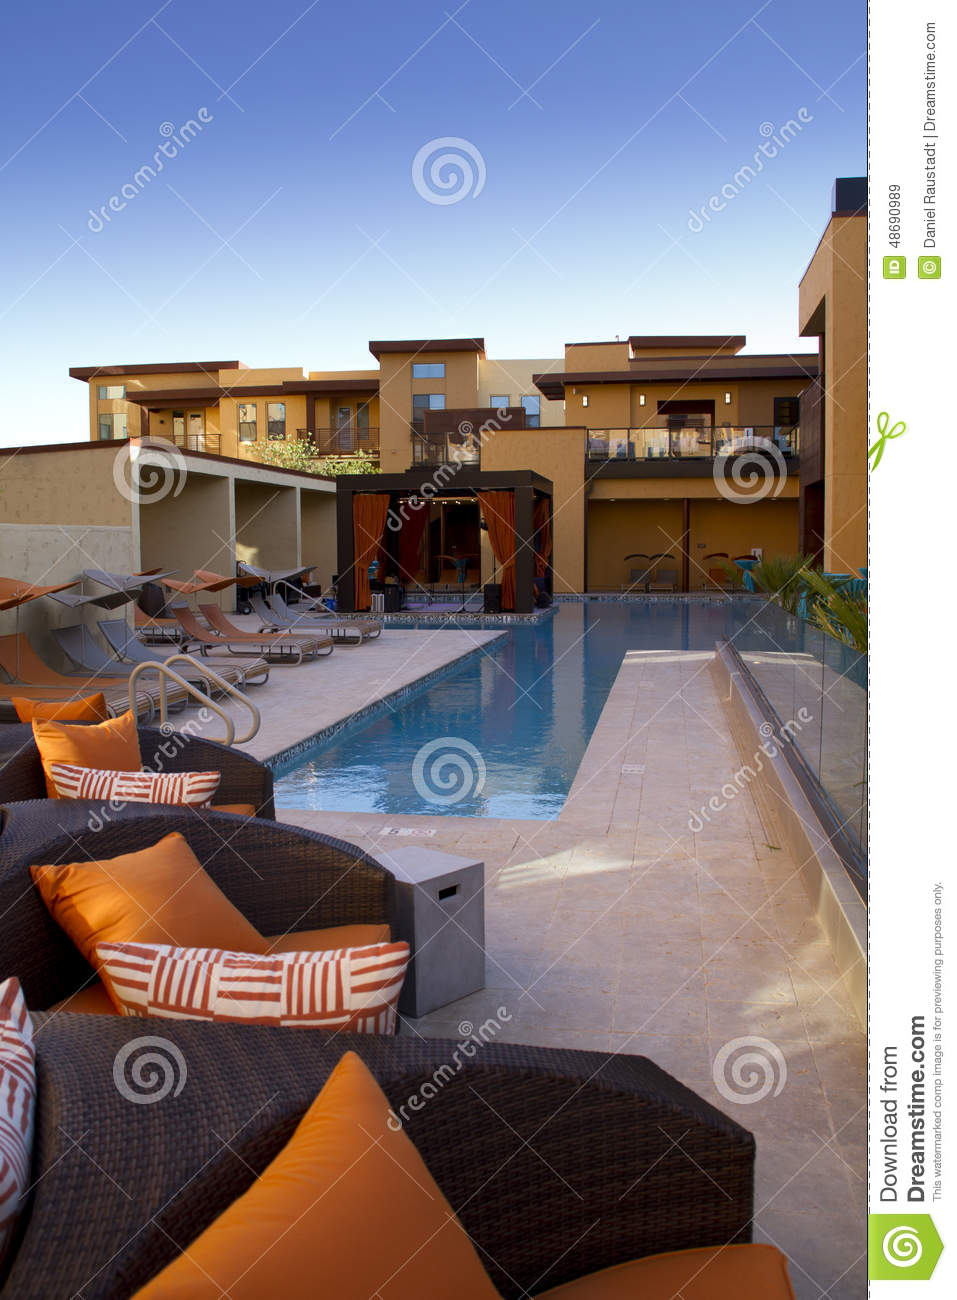 Condominium Homes Outdoor Plaza Patio And Pool Stock Photo - Image ...